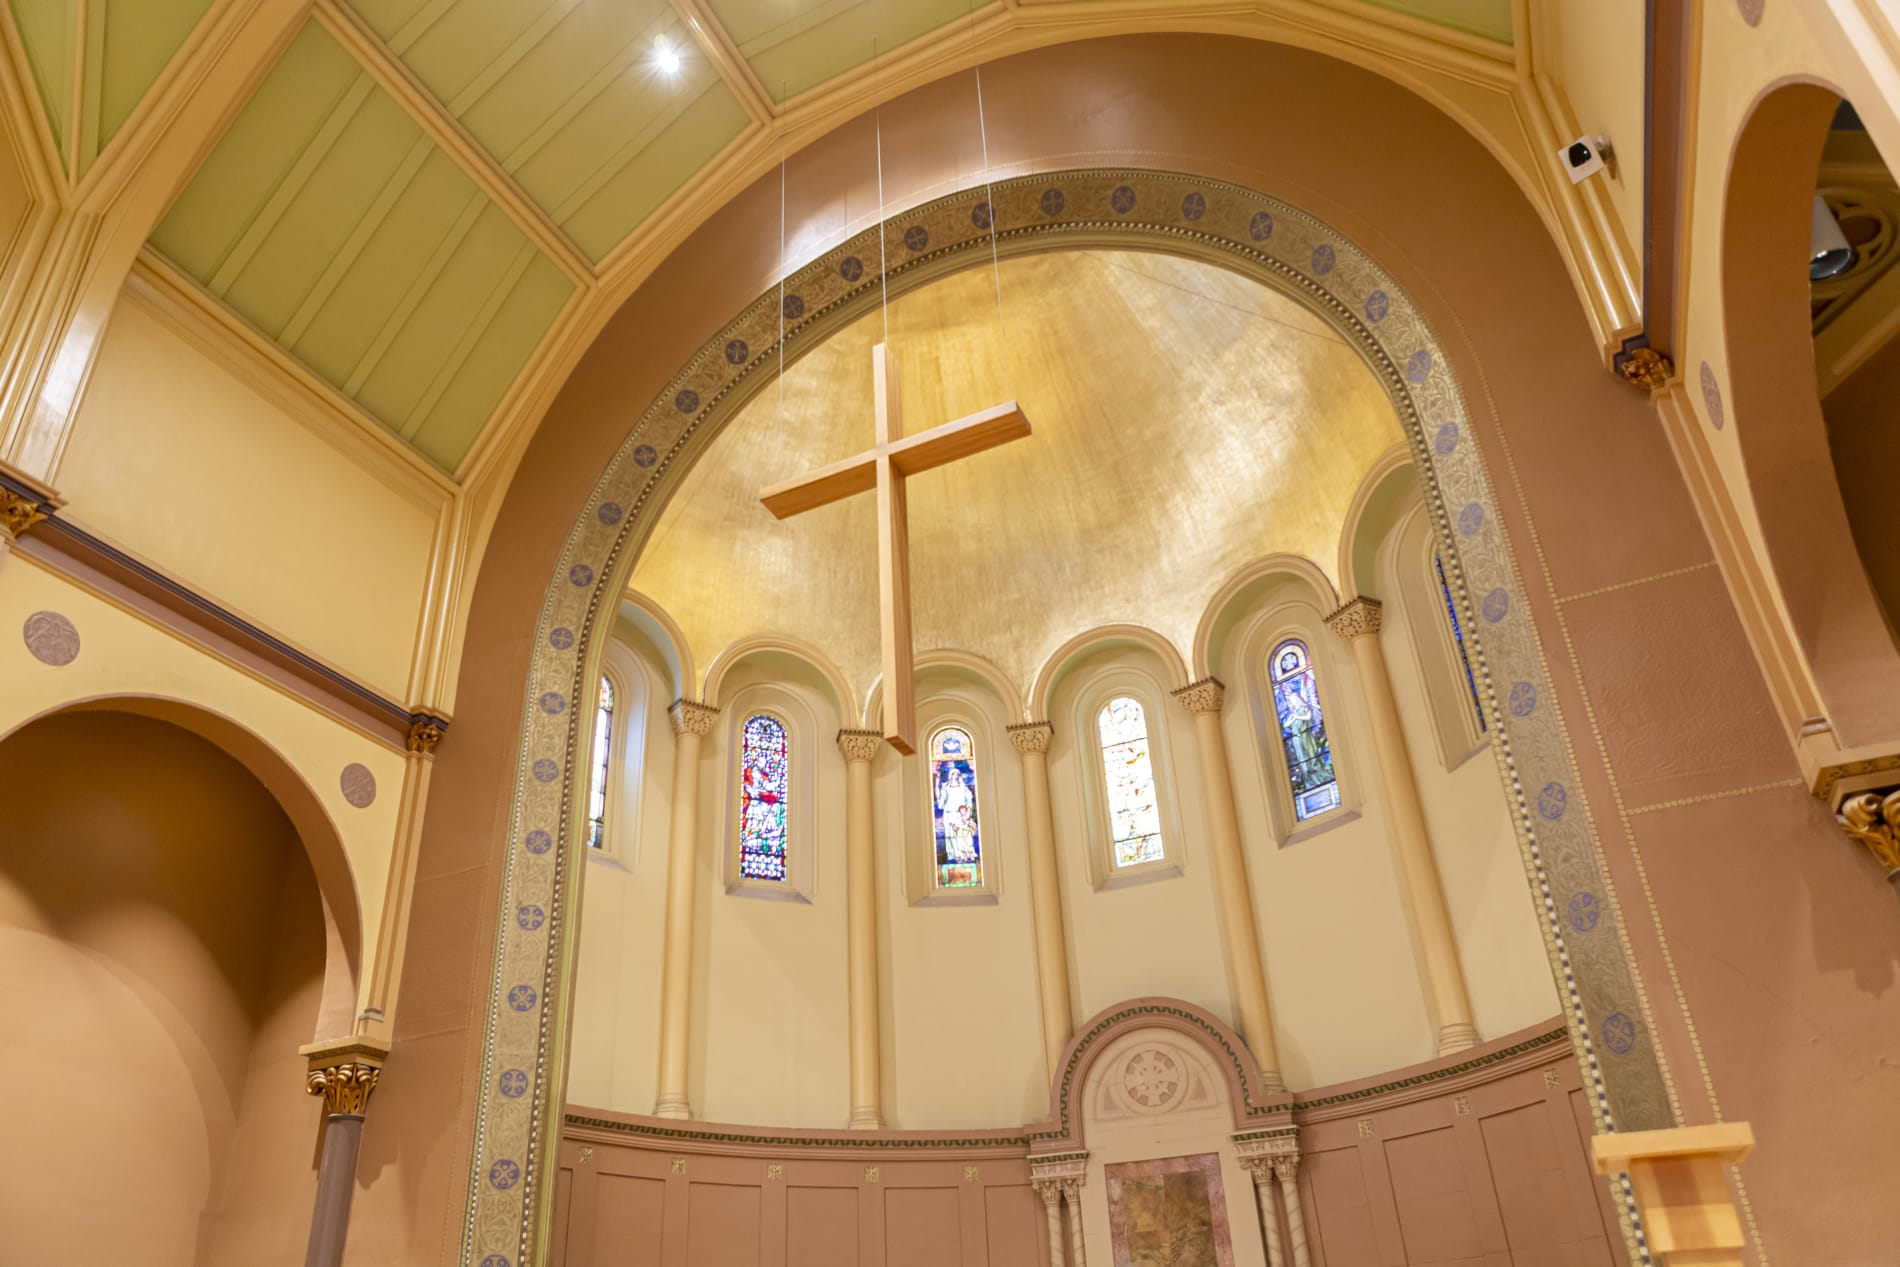 a picture of the cross hanging from the ceiling